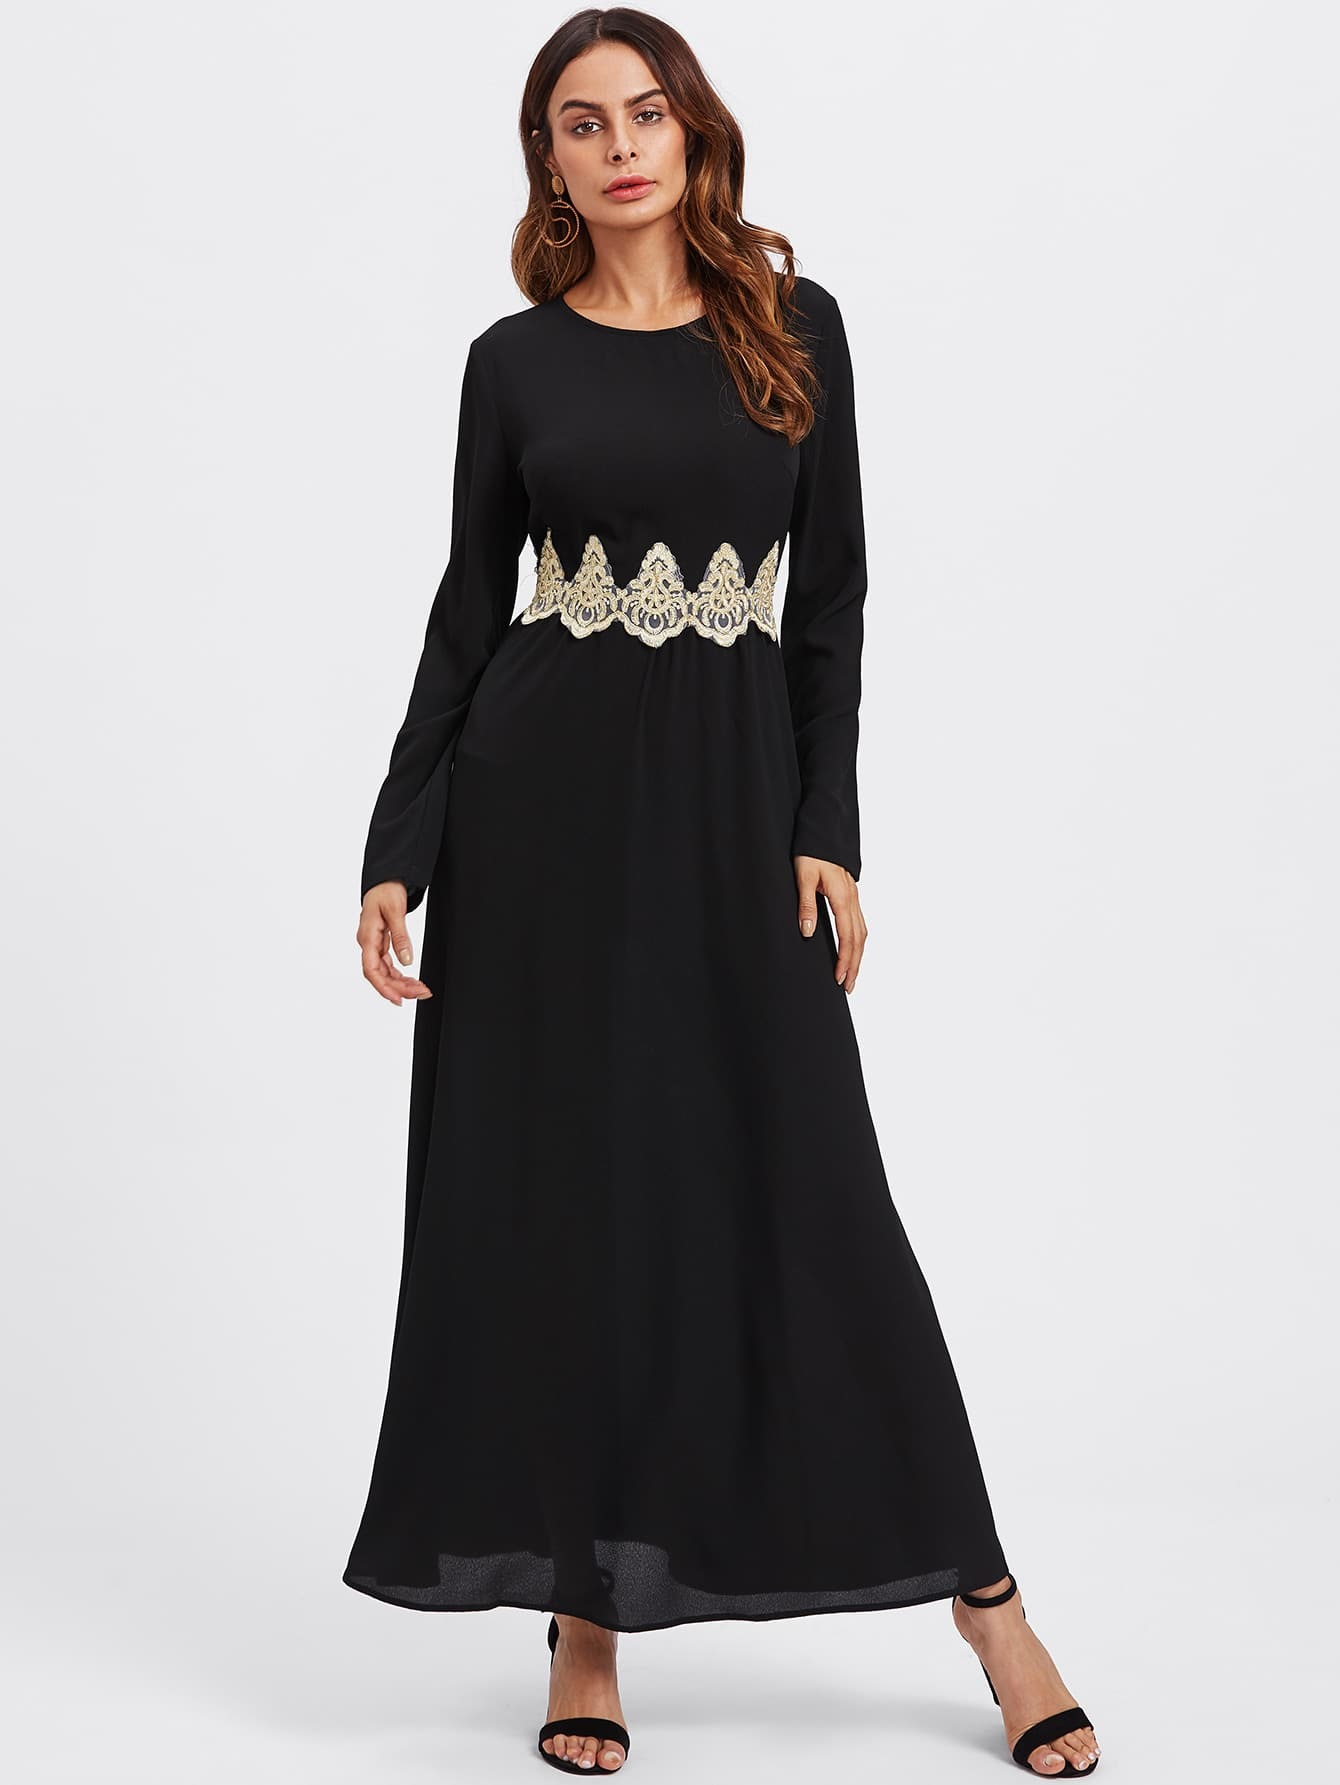 Lace Applique Hijab Evening Dress